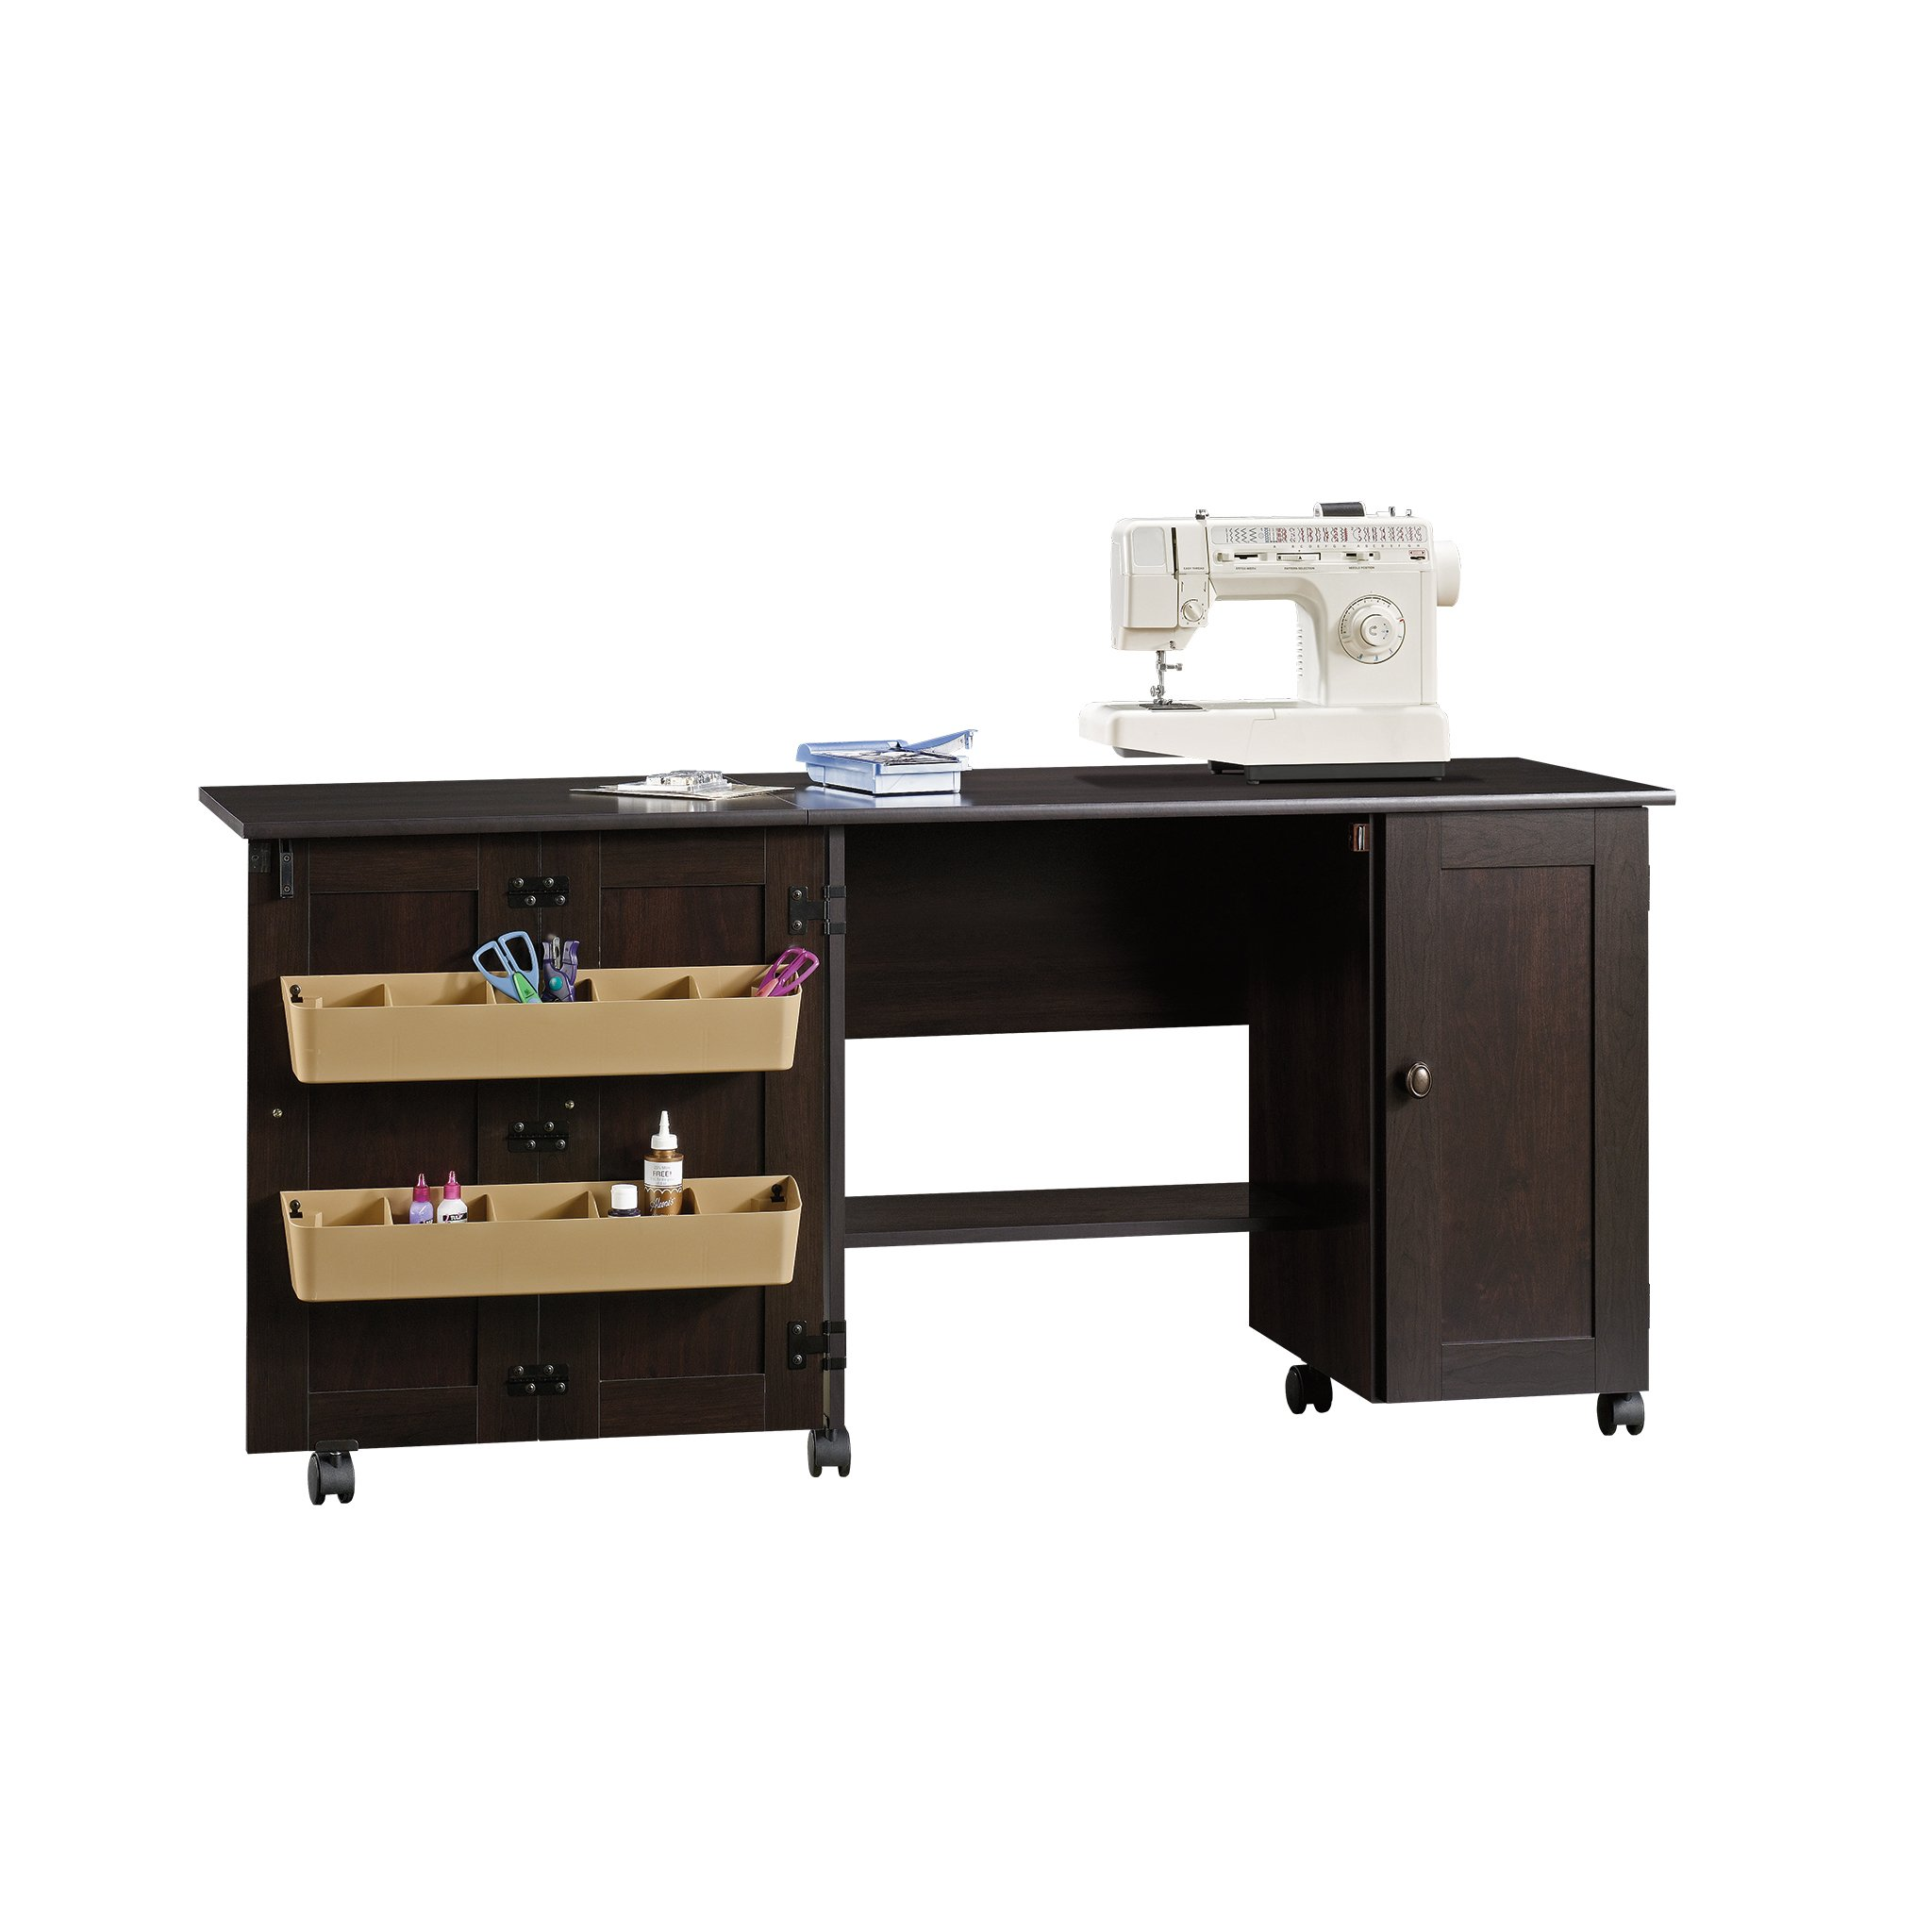 Best rated in storage cabinets helpful customer reviews for Sauder sewing craft table